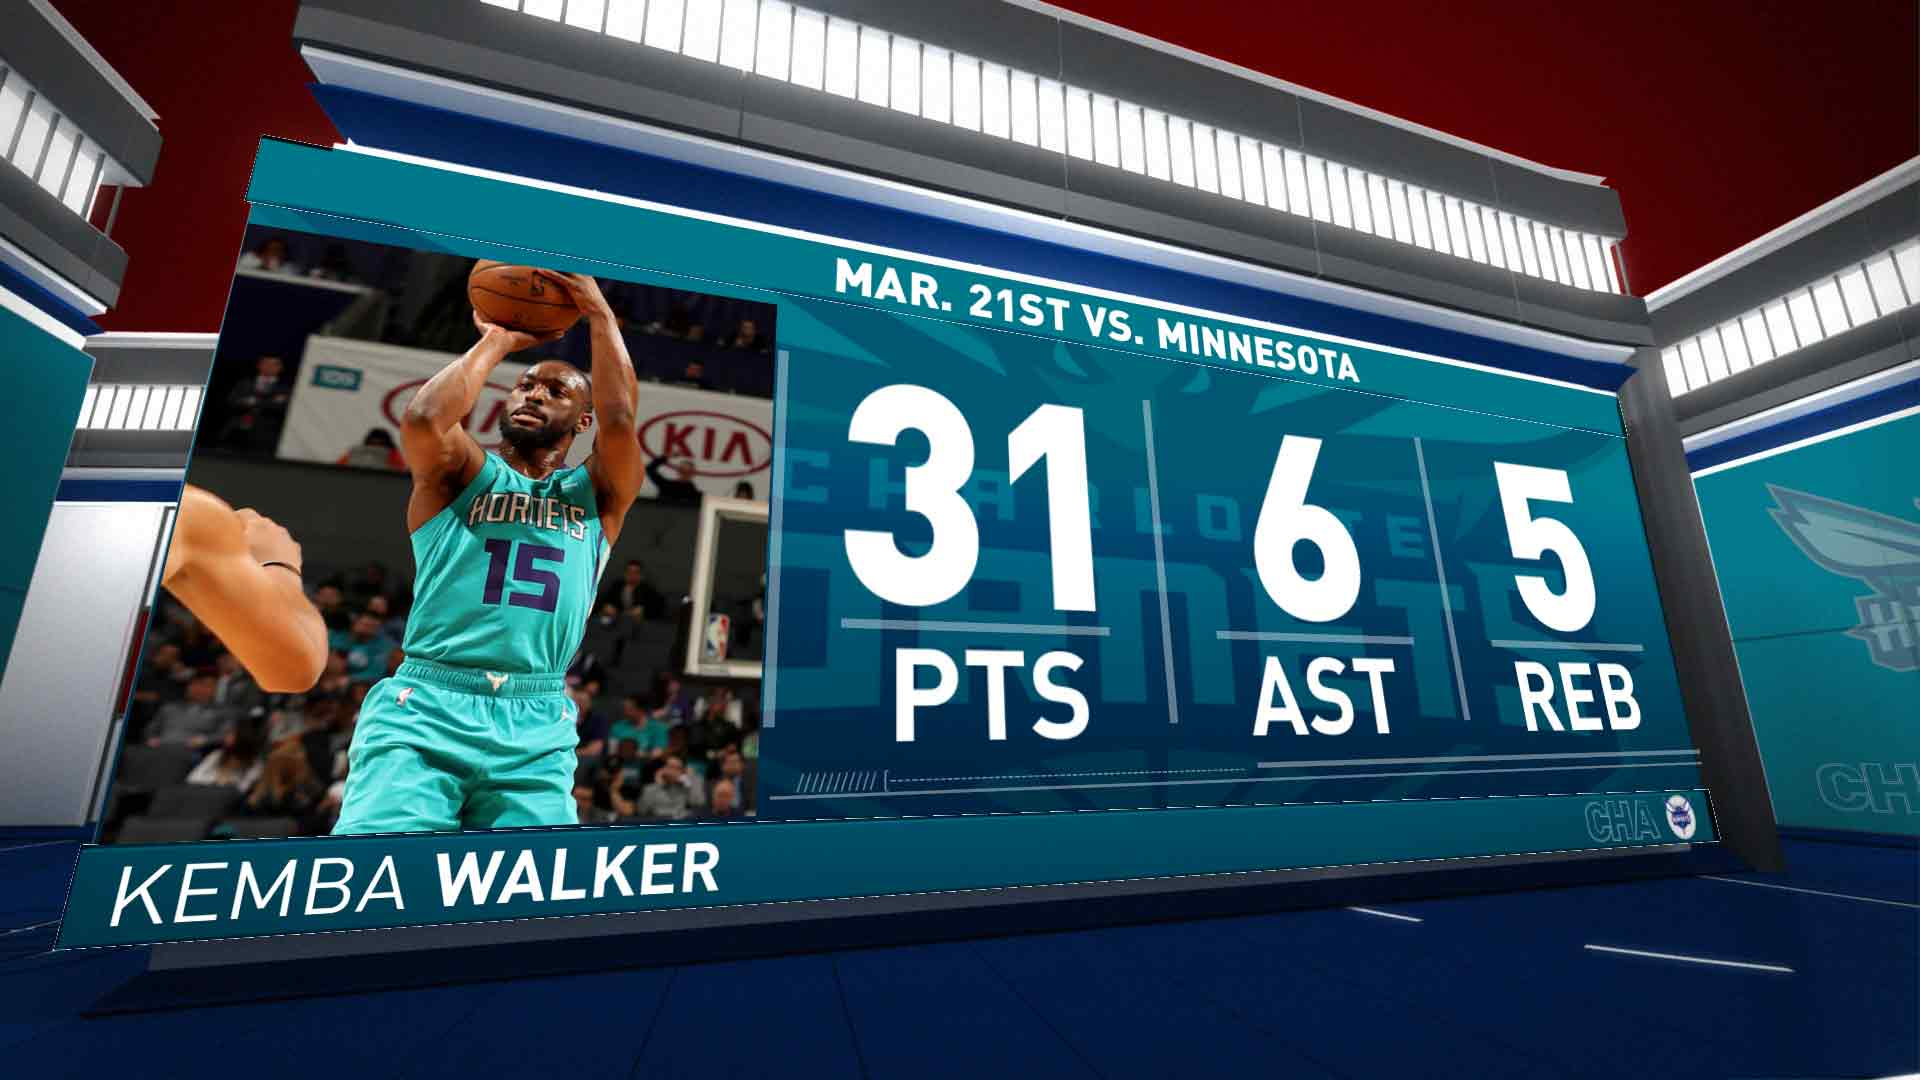 Kemba Walker (31 points) Highlights vs. Minnesota Timberwolves